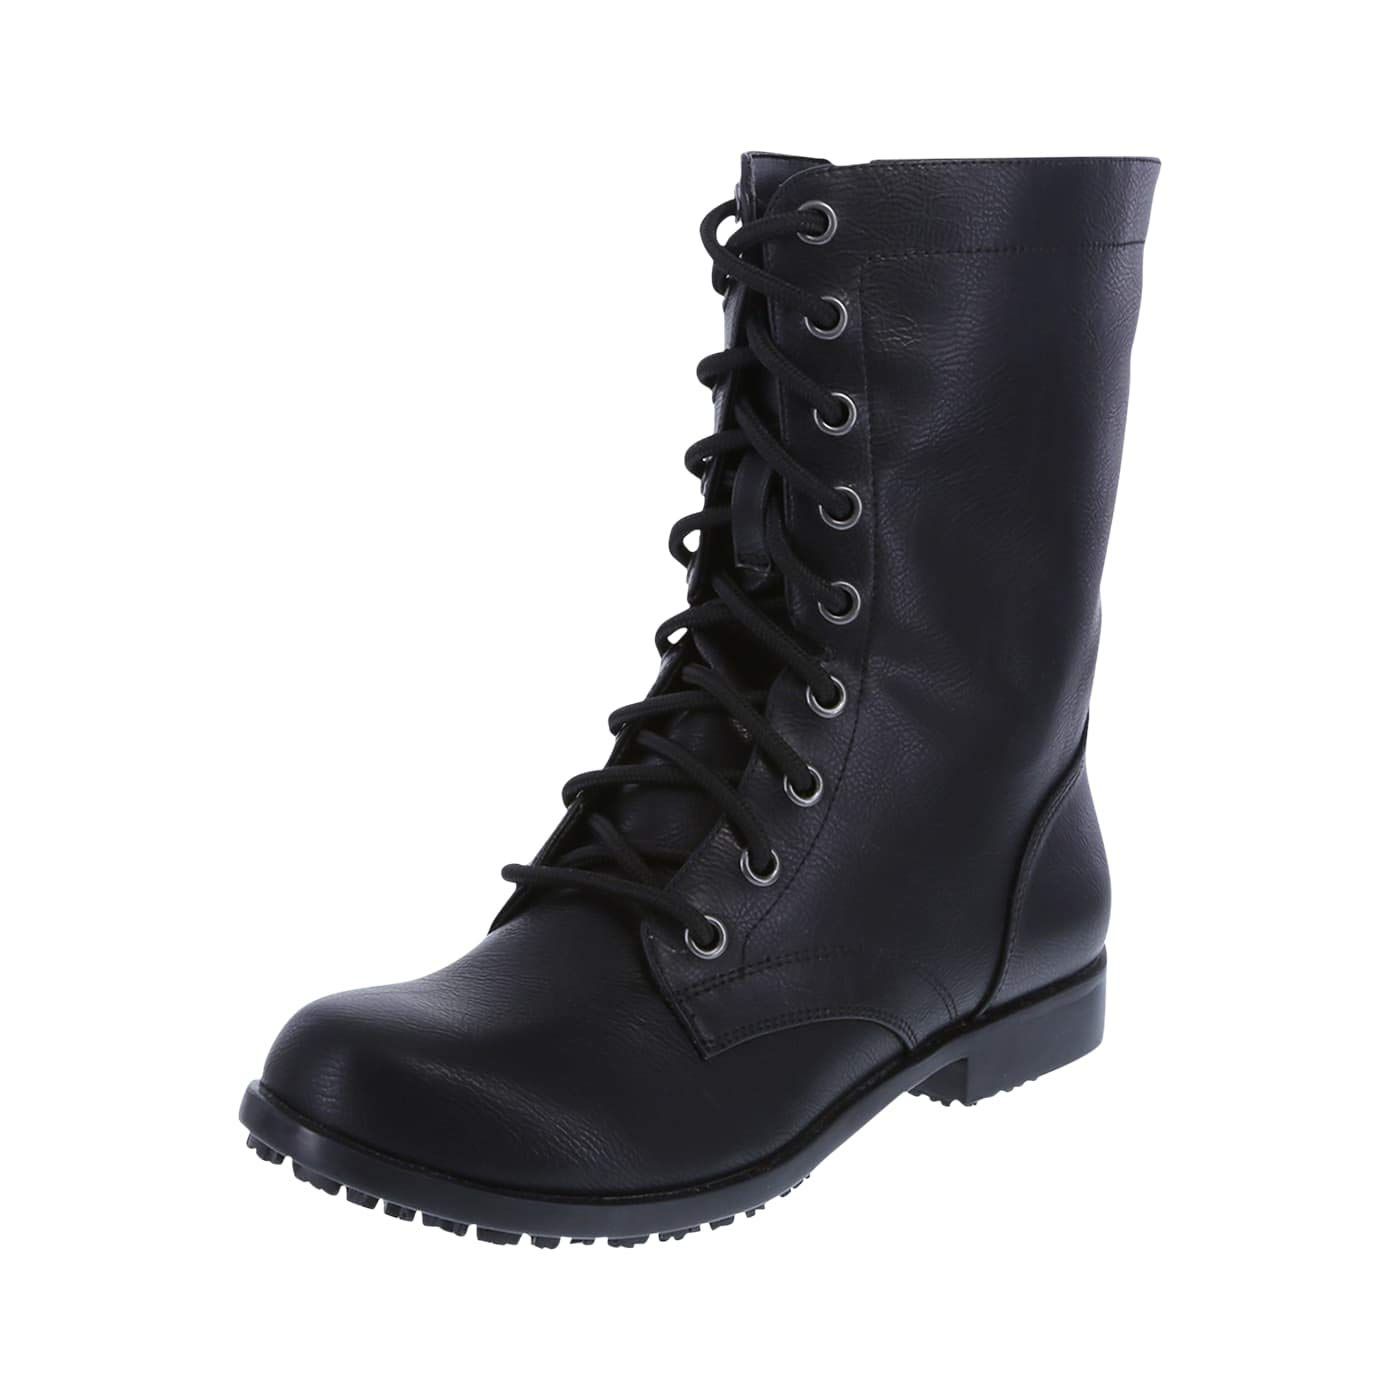 safeTstep Slip Resistant Women's Brooke Lace-Up with Zipper Boot